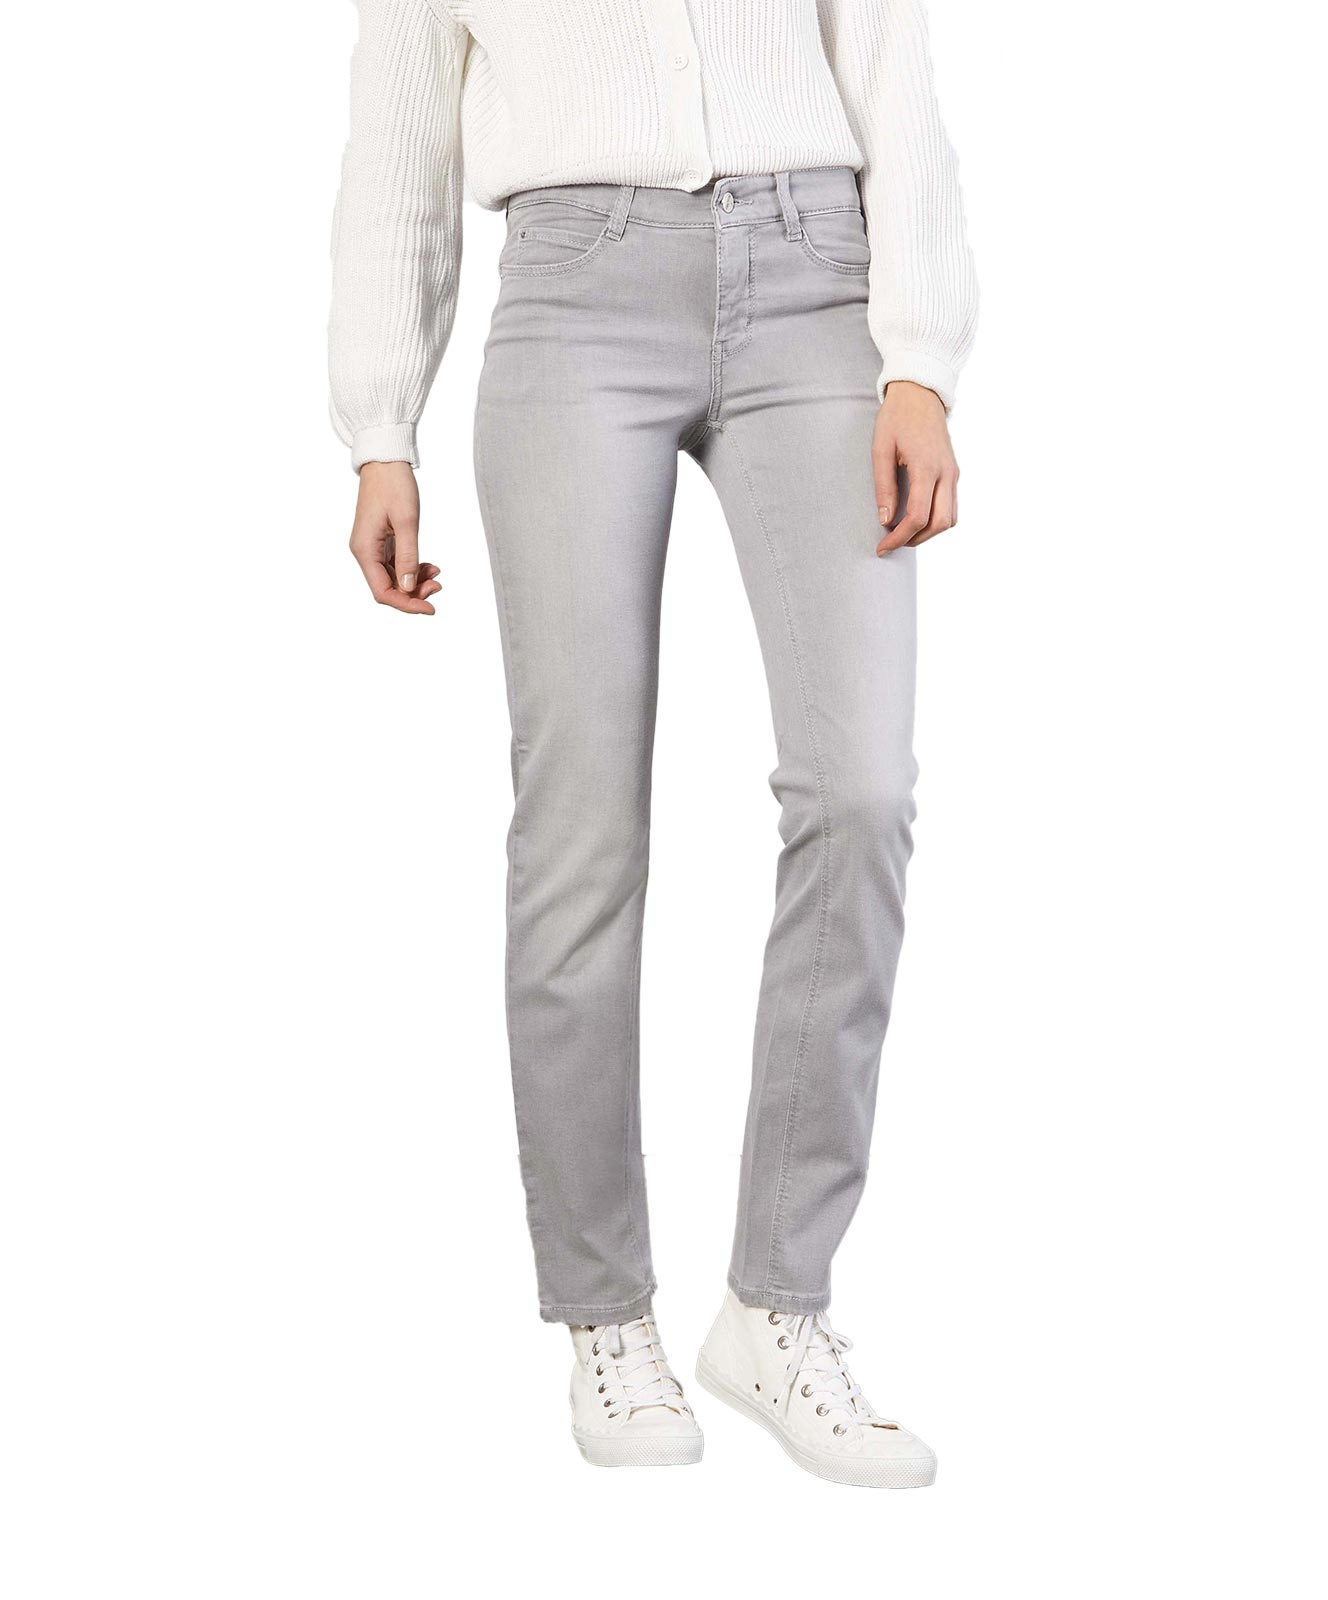 Hosen - MAC Straight Leg Jeans Dream in Silver Grey Used  - Onlineshop Jeans Meile